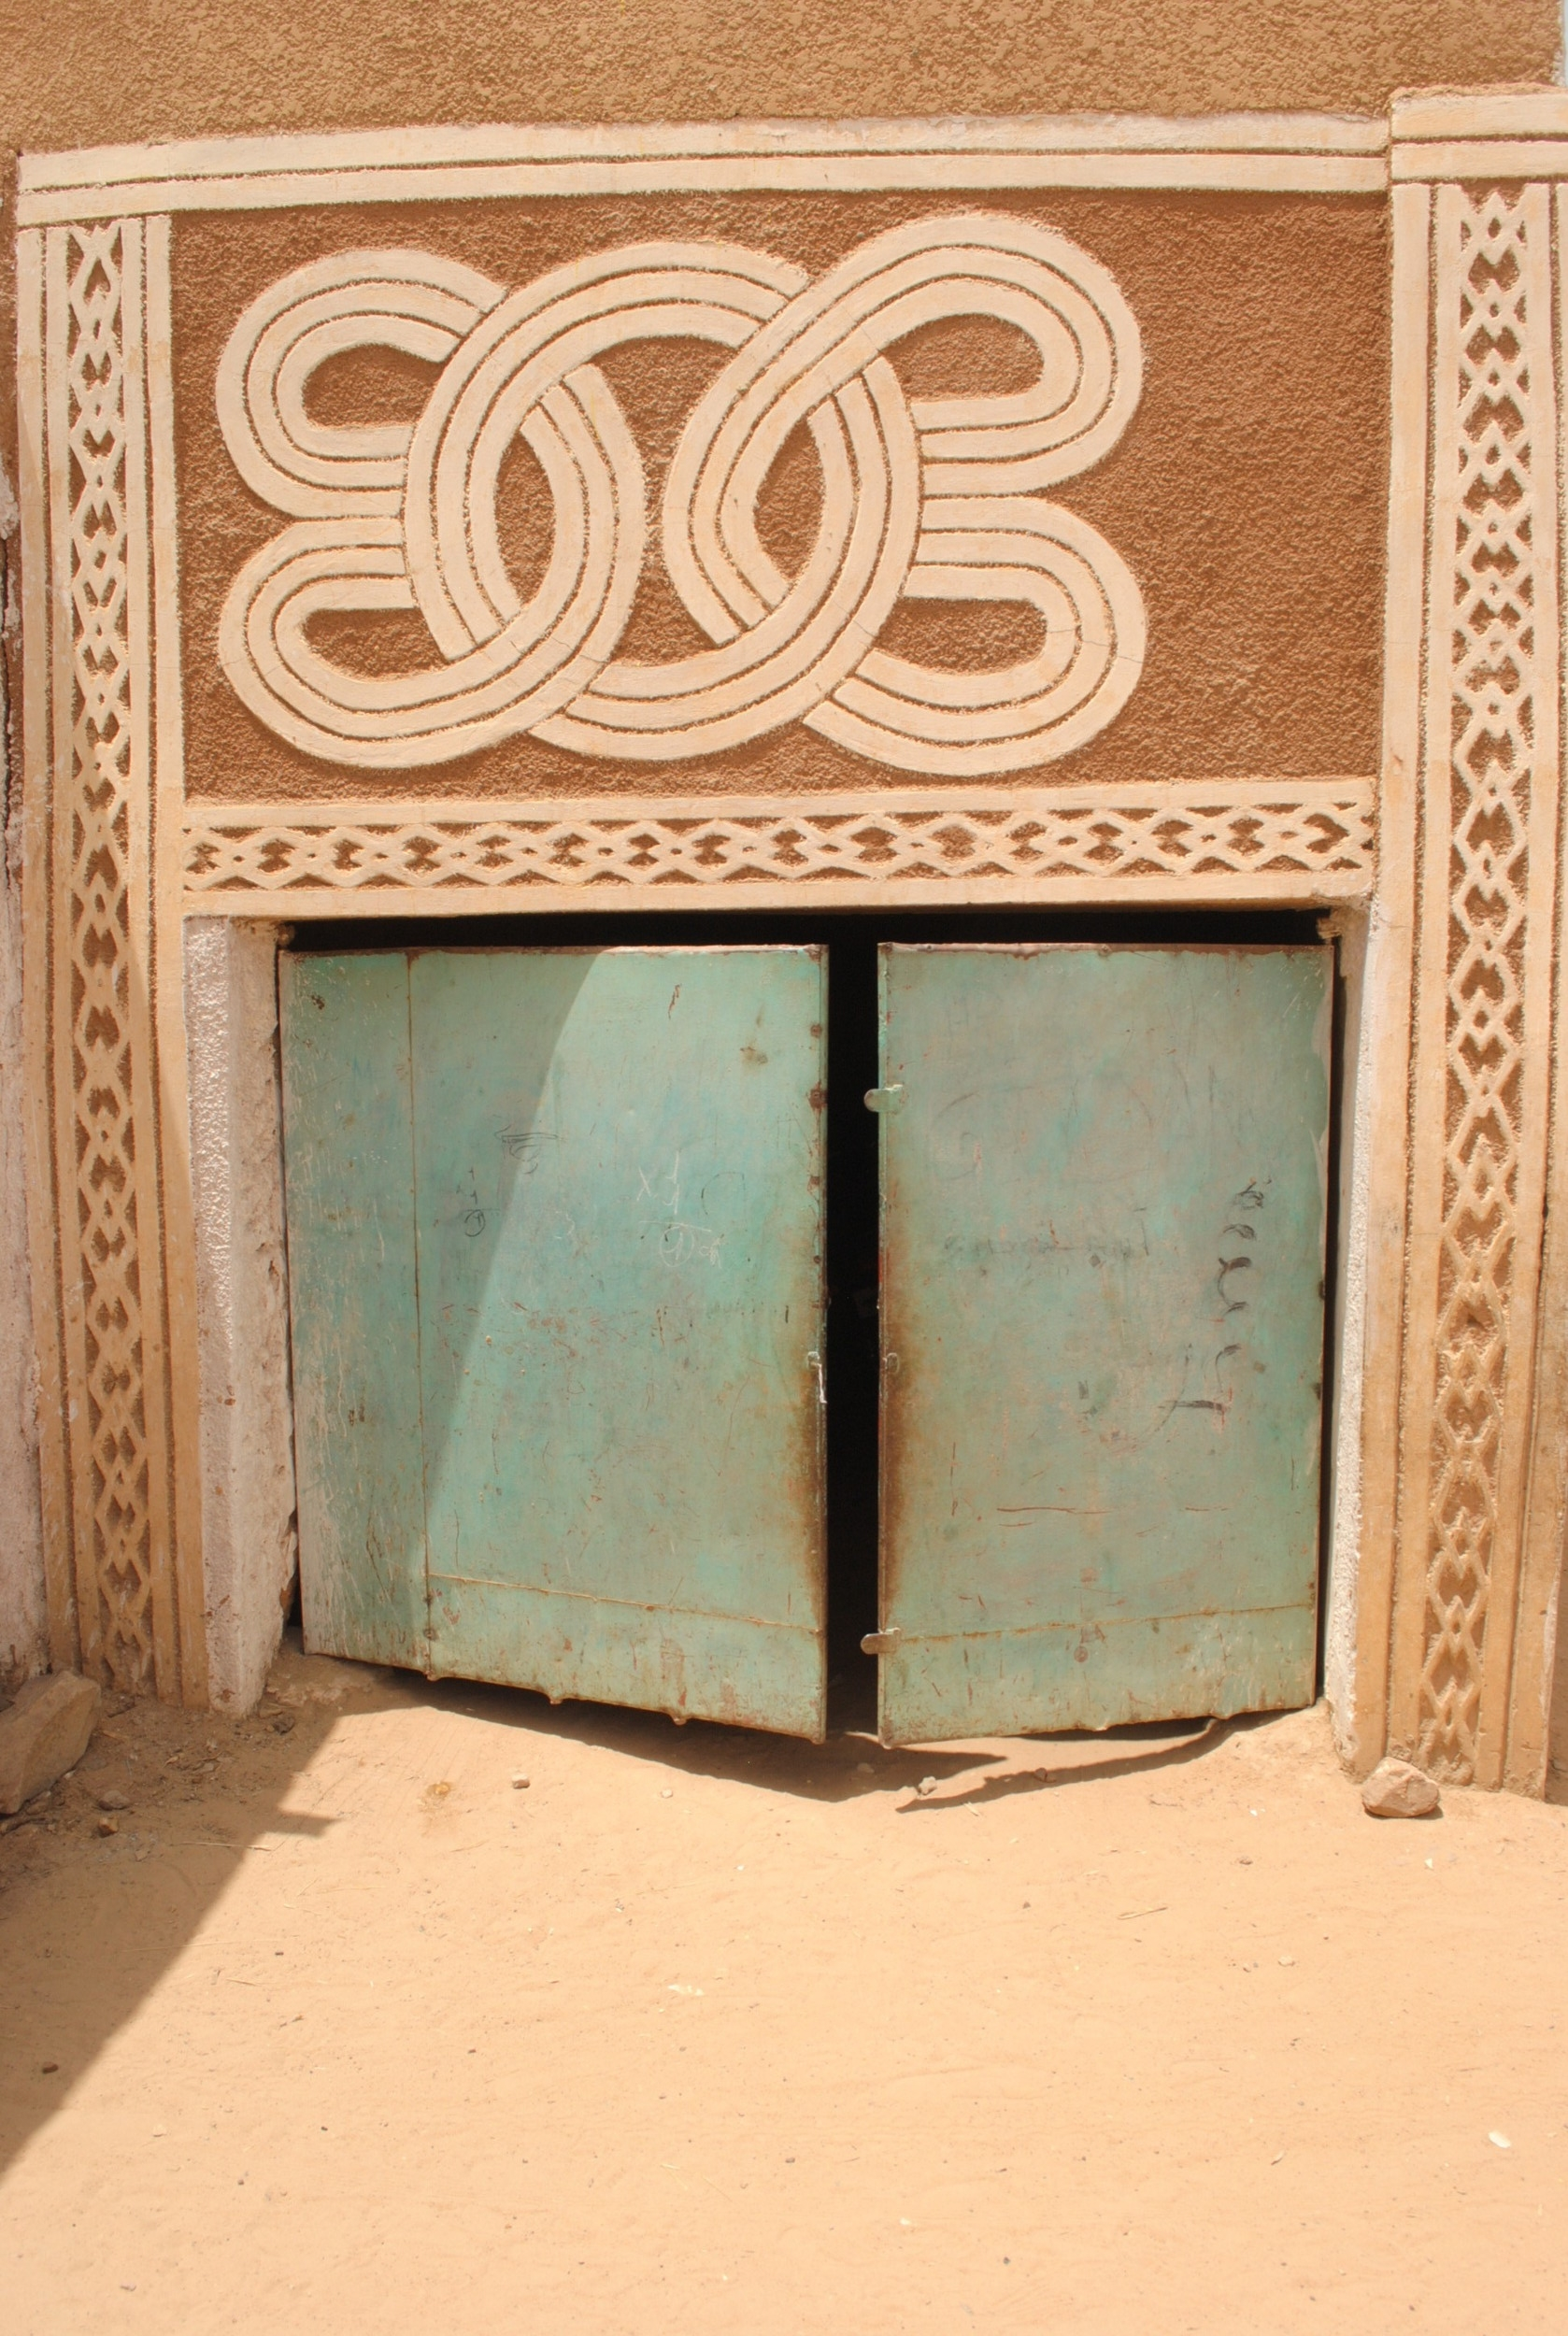 House garage door in Zinder ©Mariam Kamara